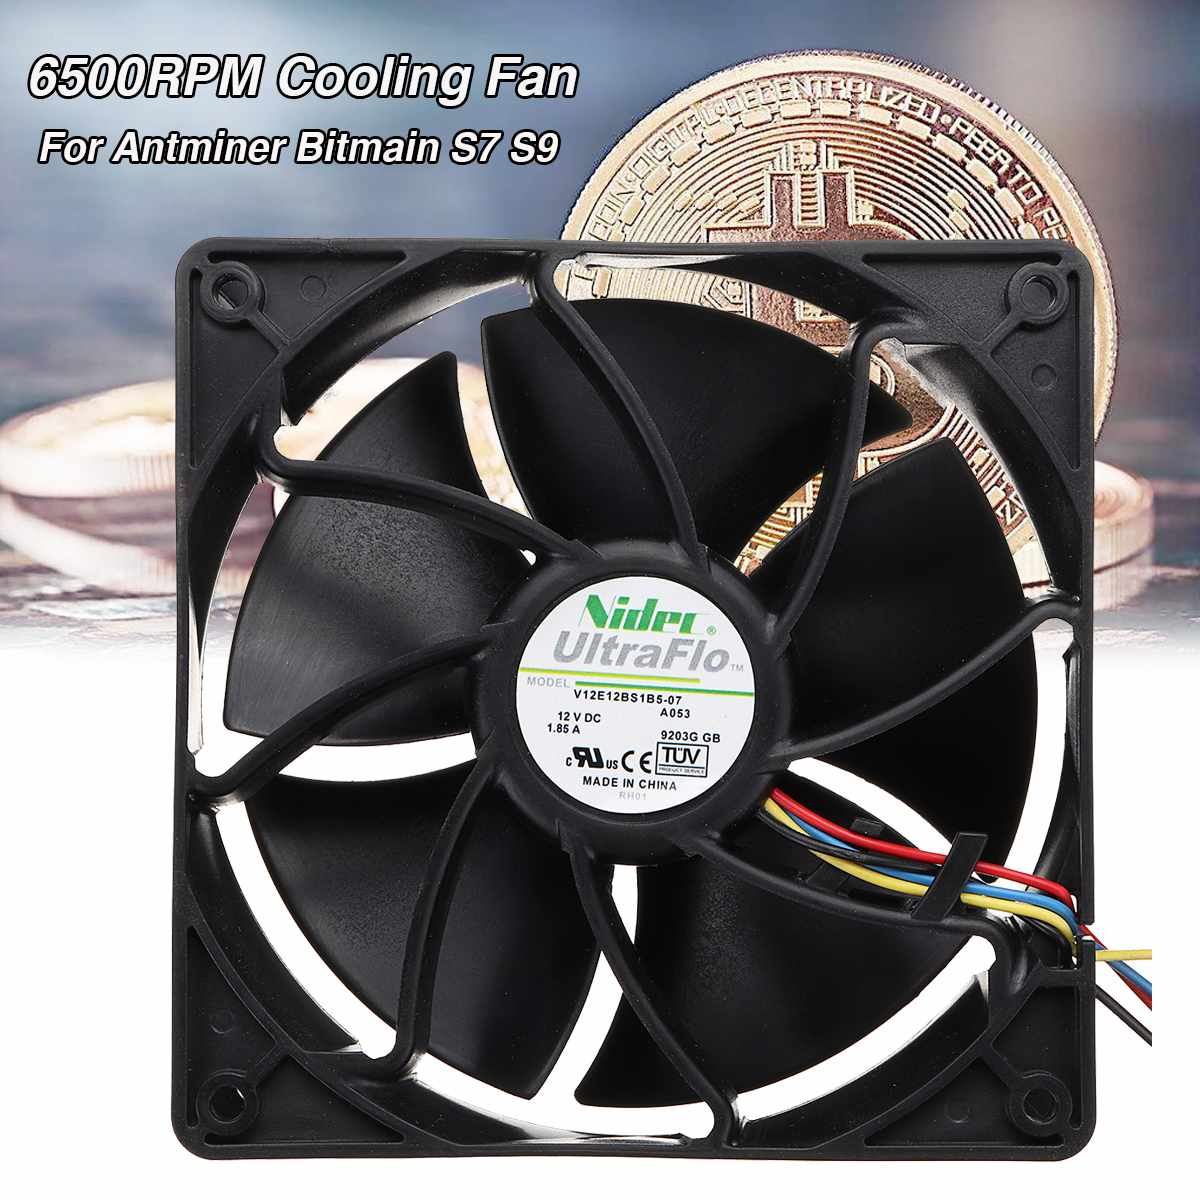 Computer & Office Buy Cheap Slim Universal Cpu Cooler 120mm 4pin Temperature Controlled Water Cooled Chassis Mute Quiet And Long Life Fan Heatsink Radiator Online Discount